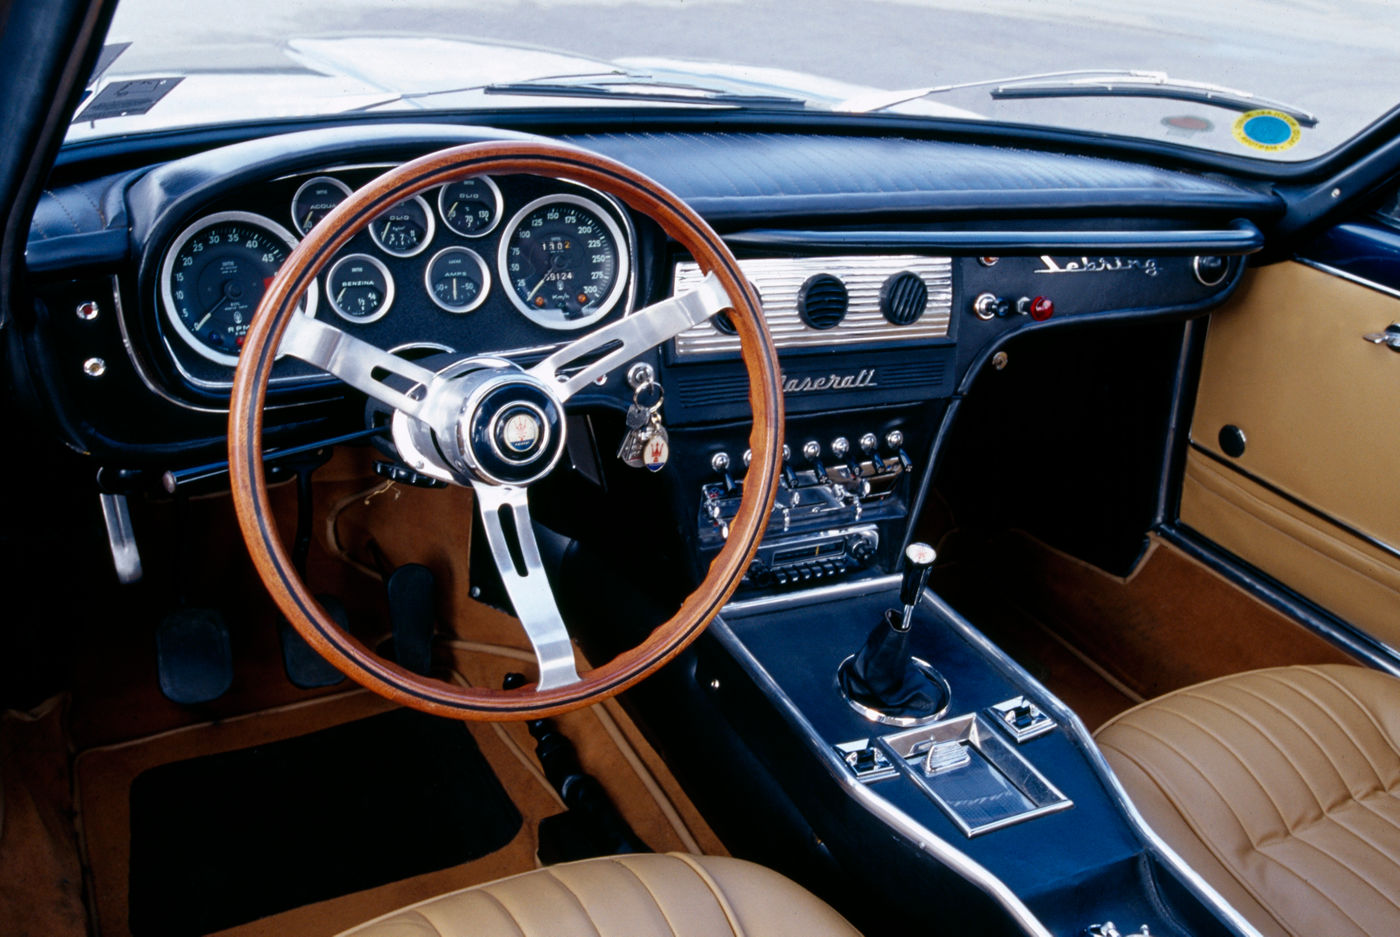 1962 Maserati Sebring - First Series - interior view of the classic car model